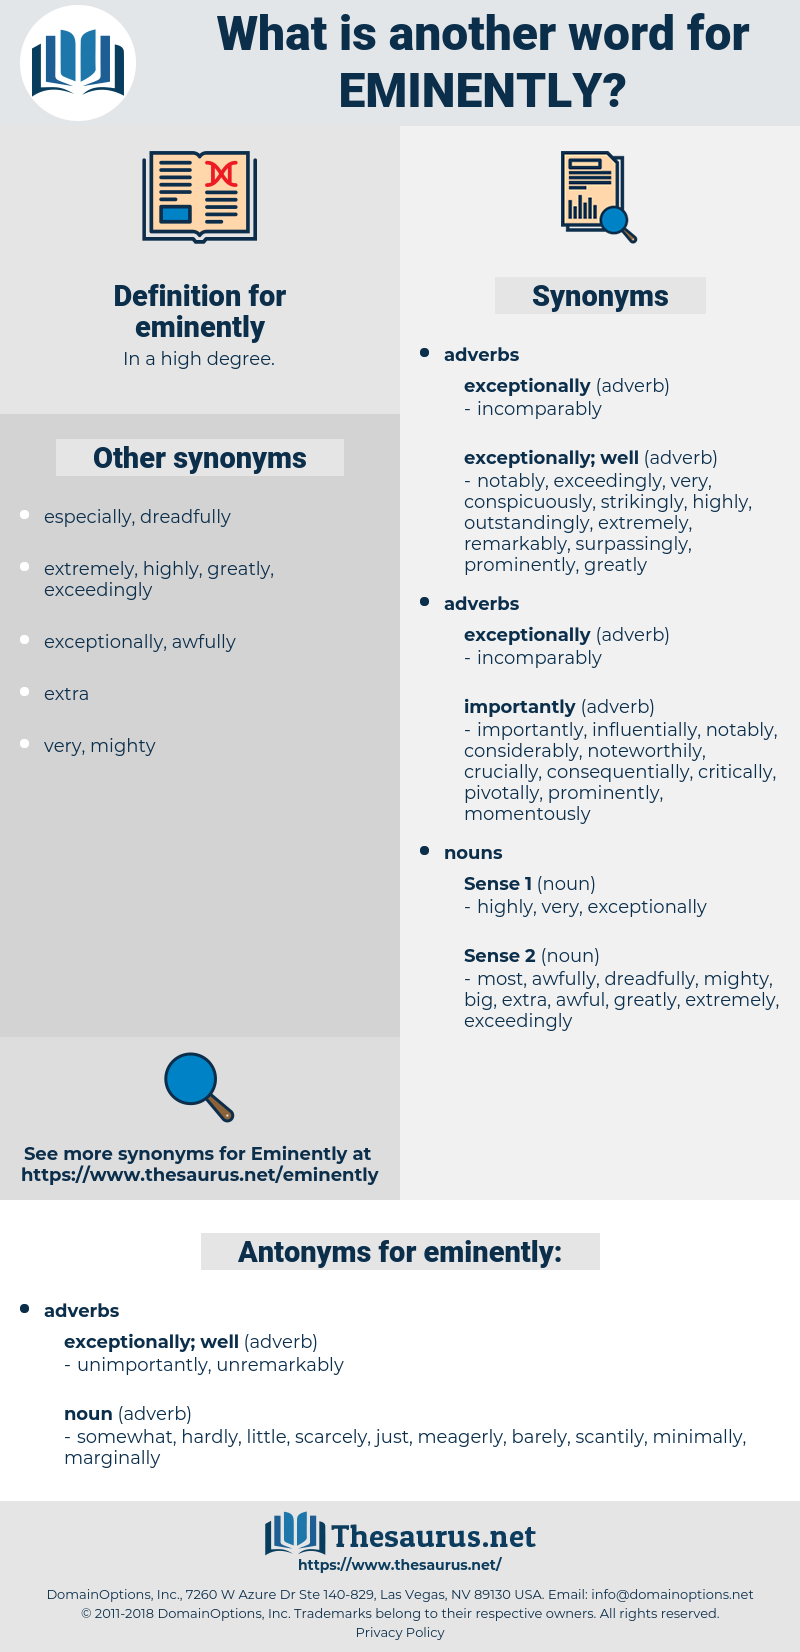 eminently, synonym eminently, another word for eminently, words like eminently, thesaurus eminently